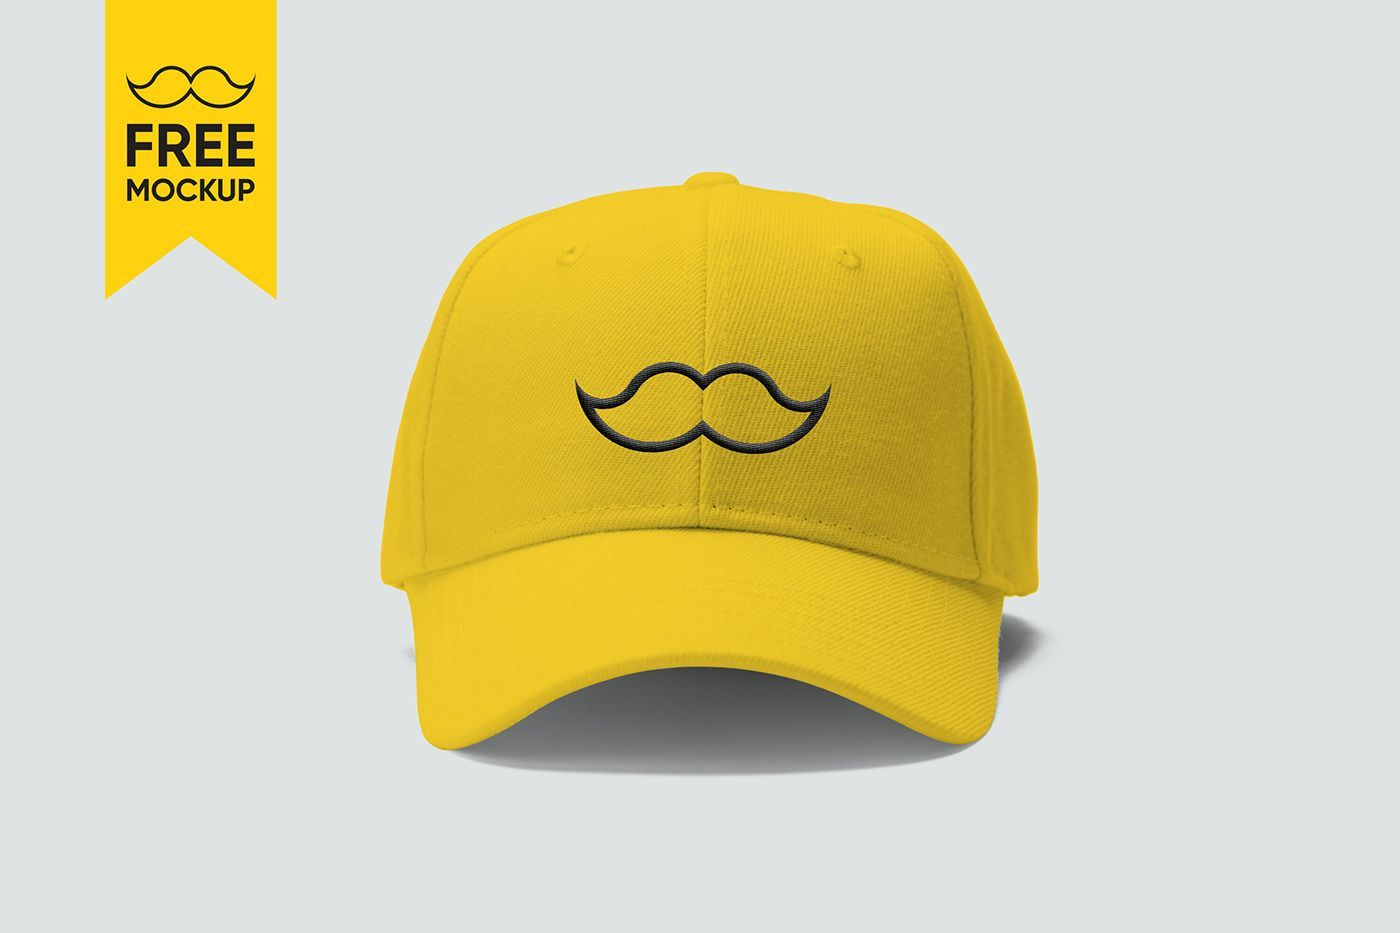 Free Cap Mockup Psd Yellow Baseball Cap Free Mockup For Your Branding And Graphic Design Projects Branding Size 3000 X Mockup Free Psd Free Mockup Mockup Psd